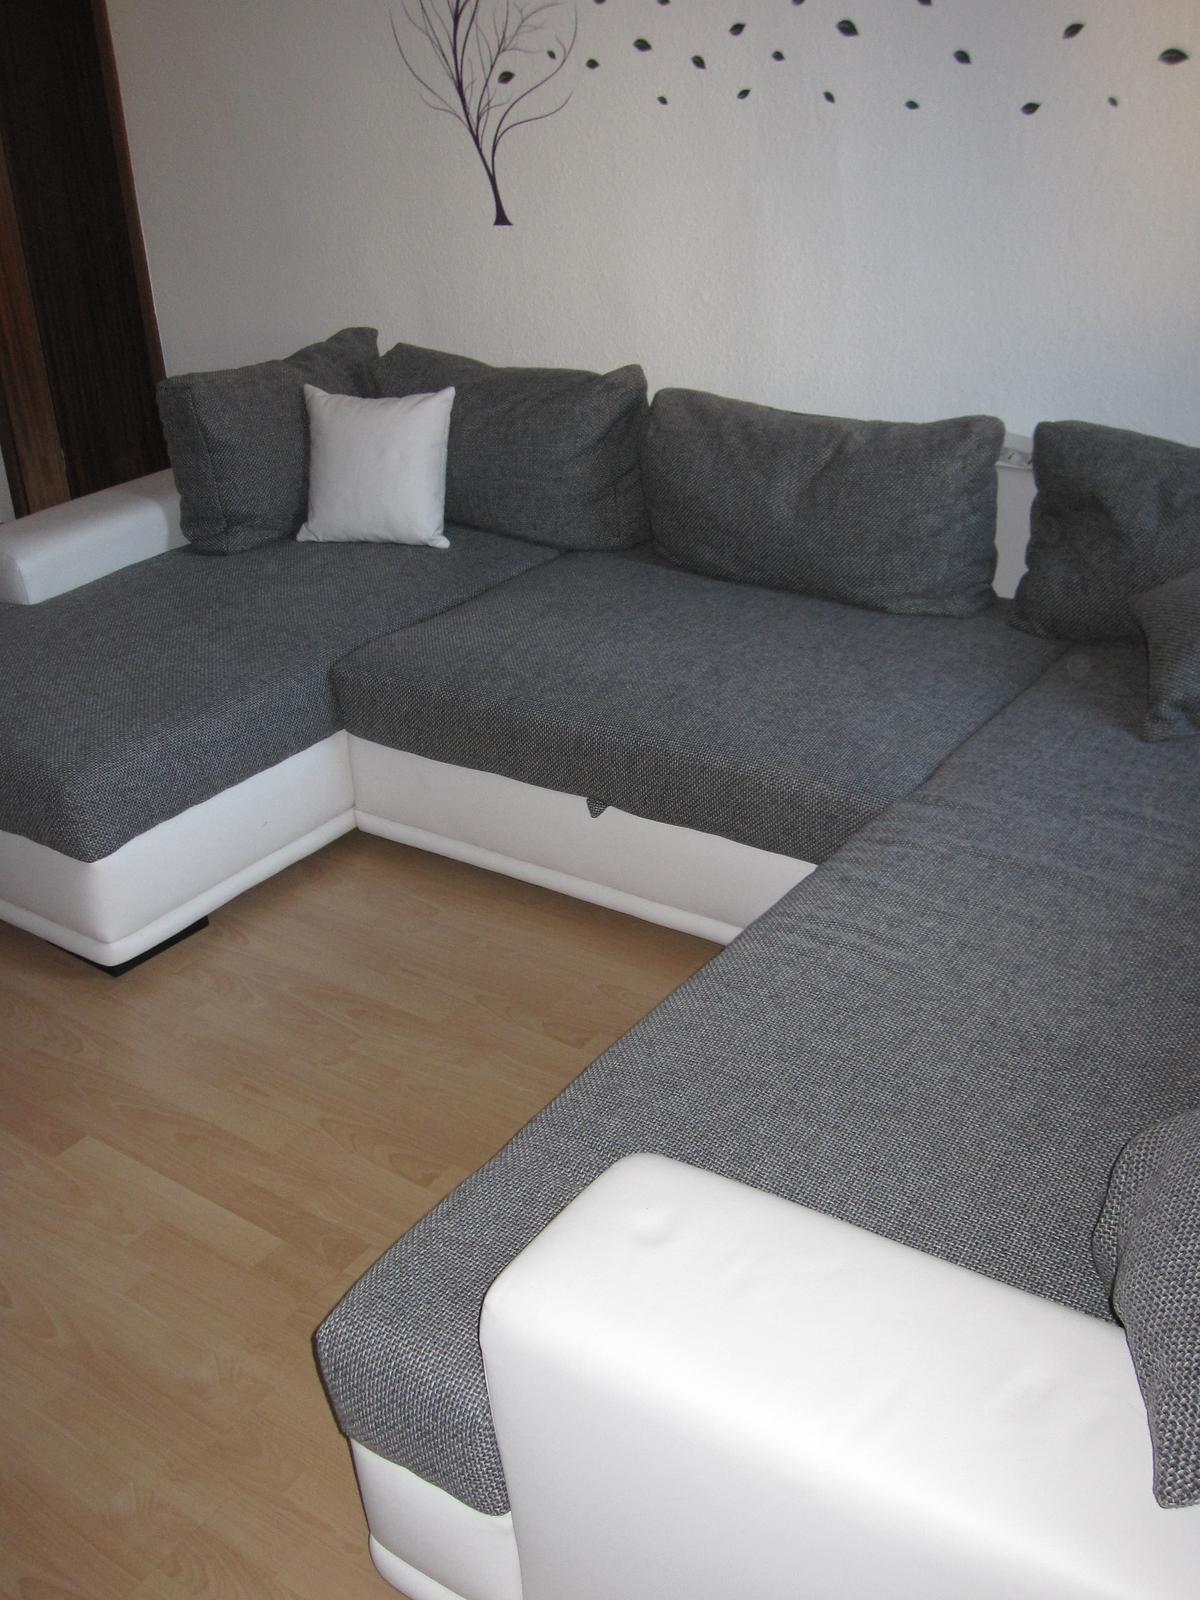 Couch U Form Grau Wohnlandschaft Xl Couch U Form Weiß Grau Schl In 67346 Speyer For €590.00 For Sale | Shpock